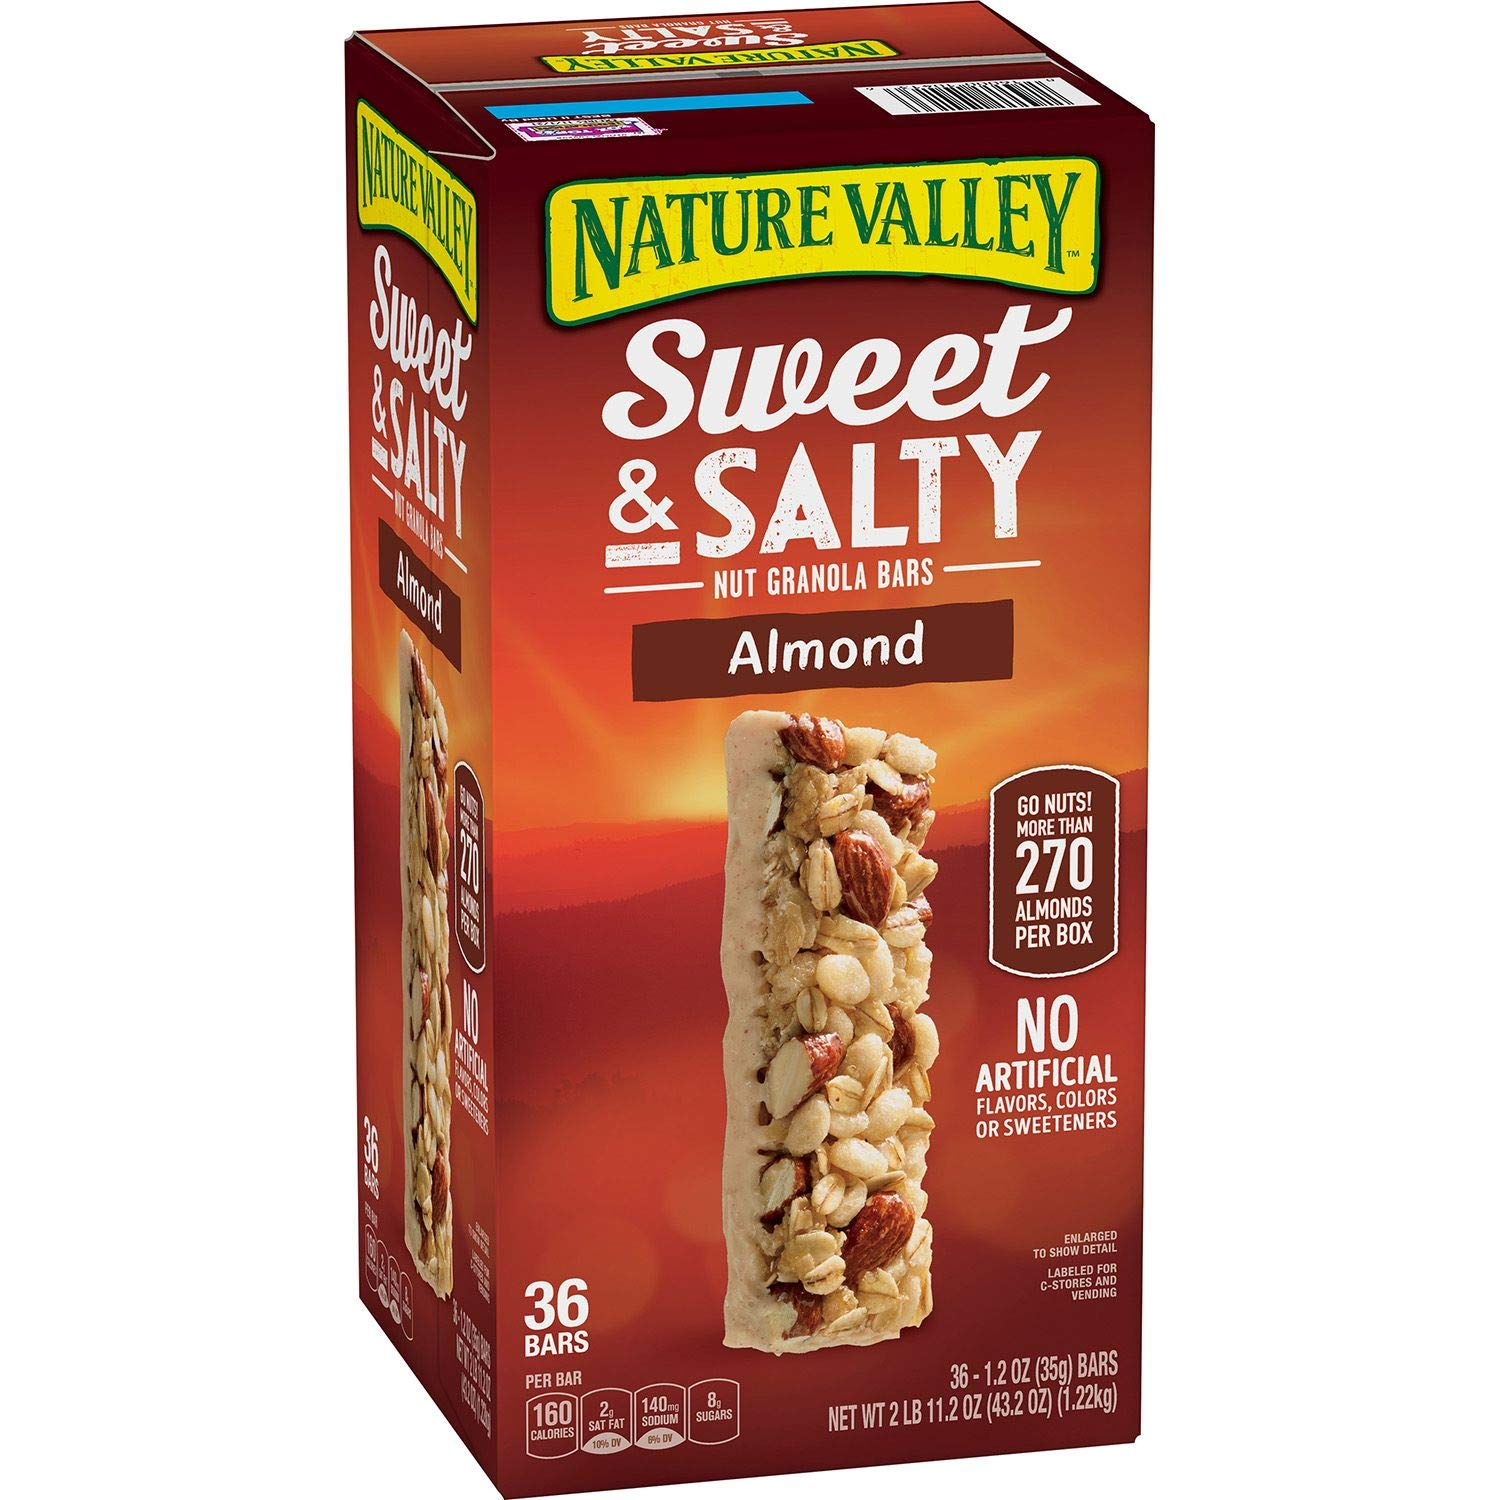 Nature Valley Sweet & Salty Almond Granola Bars (1.2 Oz., 36 ct.)